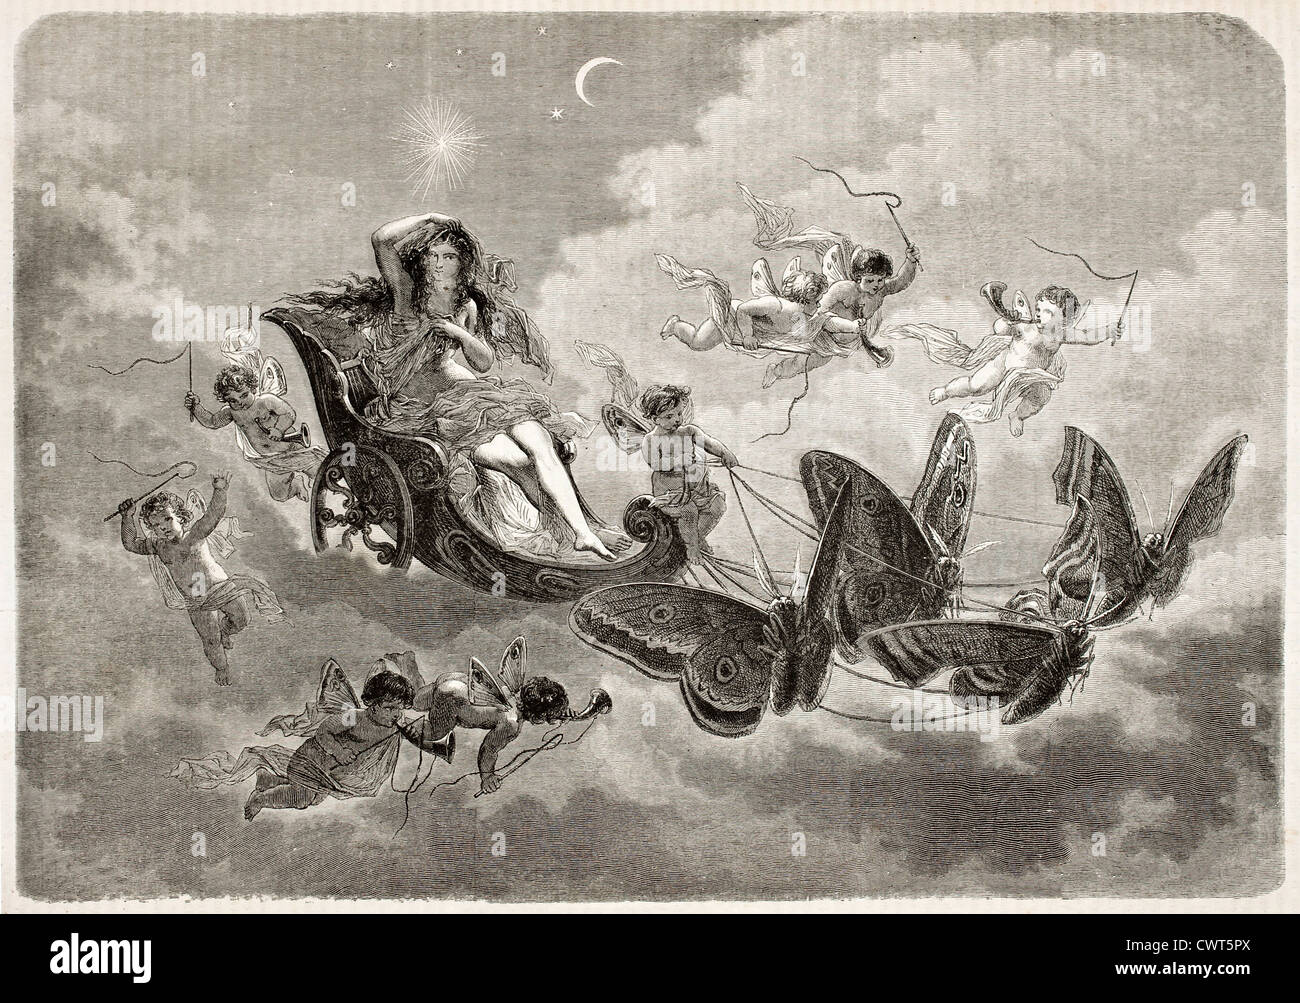 The Night old allegorical illustration - Stock Image